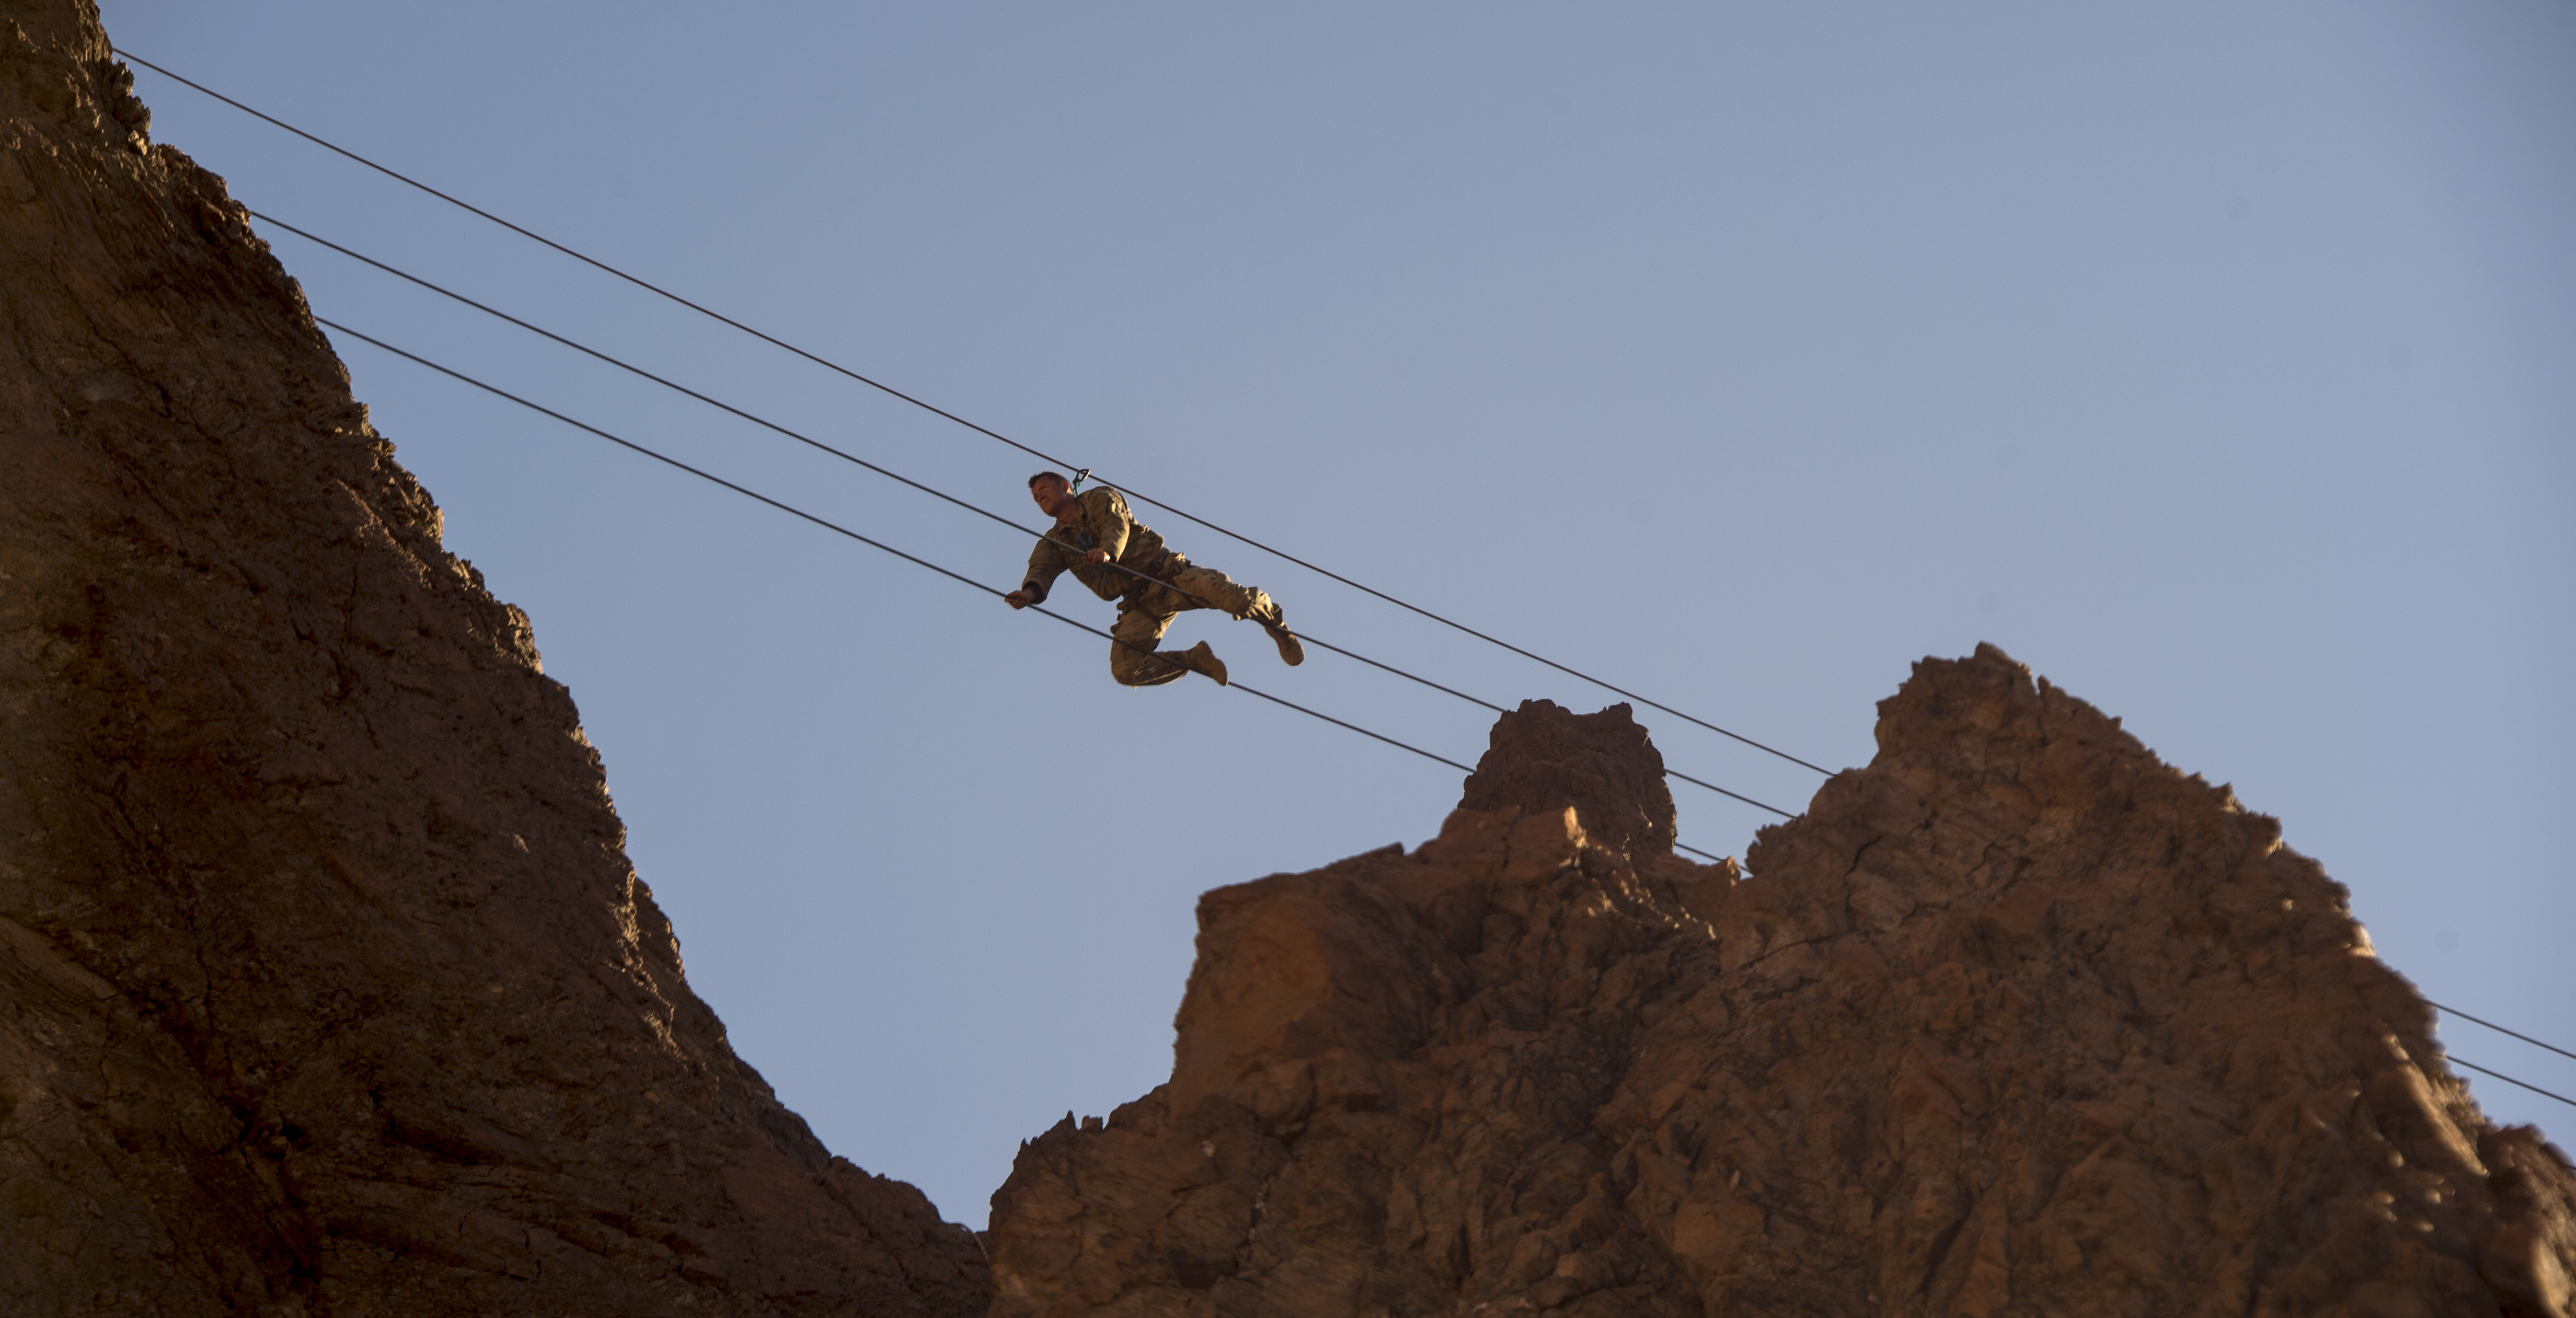 A. U.S. Army Soldier assigned to the Combined Joint Task Force - Horn of Africa, crawls across suspended wires during the mountain obstacle portion of the French Desert Commando Course held at Arta, Djibouti, Dec. 3, 2017. Thirty U.S. service members participated in the obstacle course alongside French marines assigned to the 5th Overseas Interarms Regiment, Djibouti. (U.S. Air Force photo by Staff Sgt. Timothy Moore)